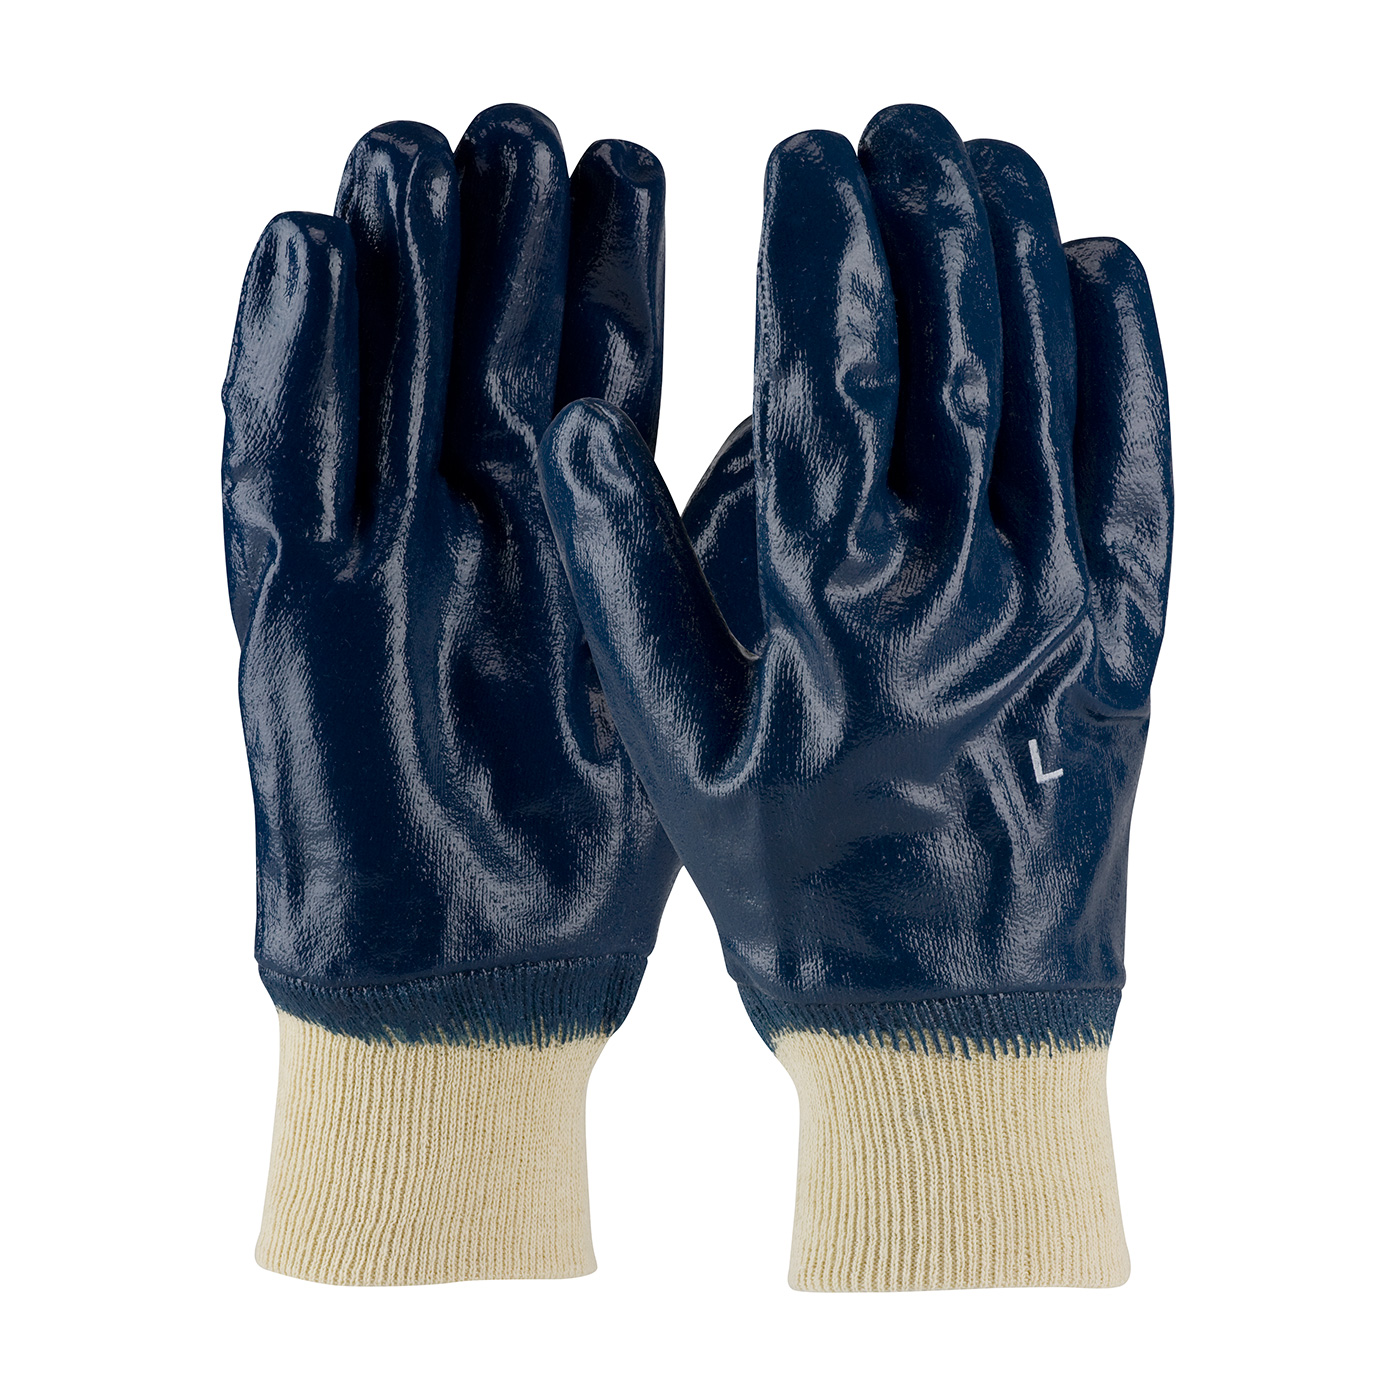 56-3152 PIP® ArmorGrip® Jersey Lined Full Nitrile Dipped Glove with Smooth Grip Texture and Knit Cuff